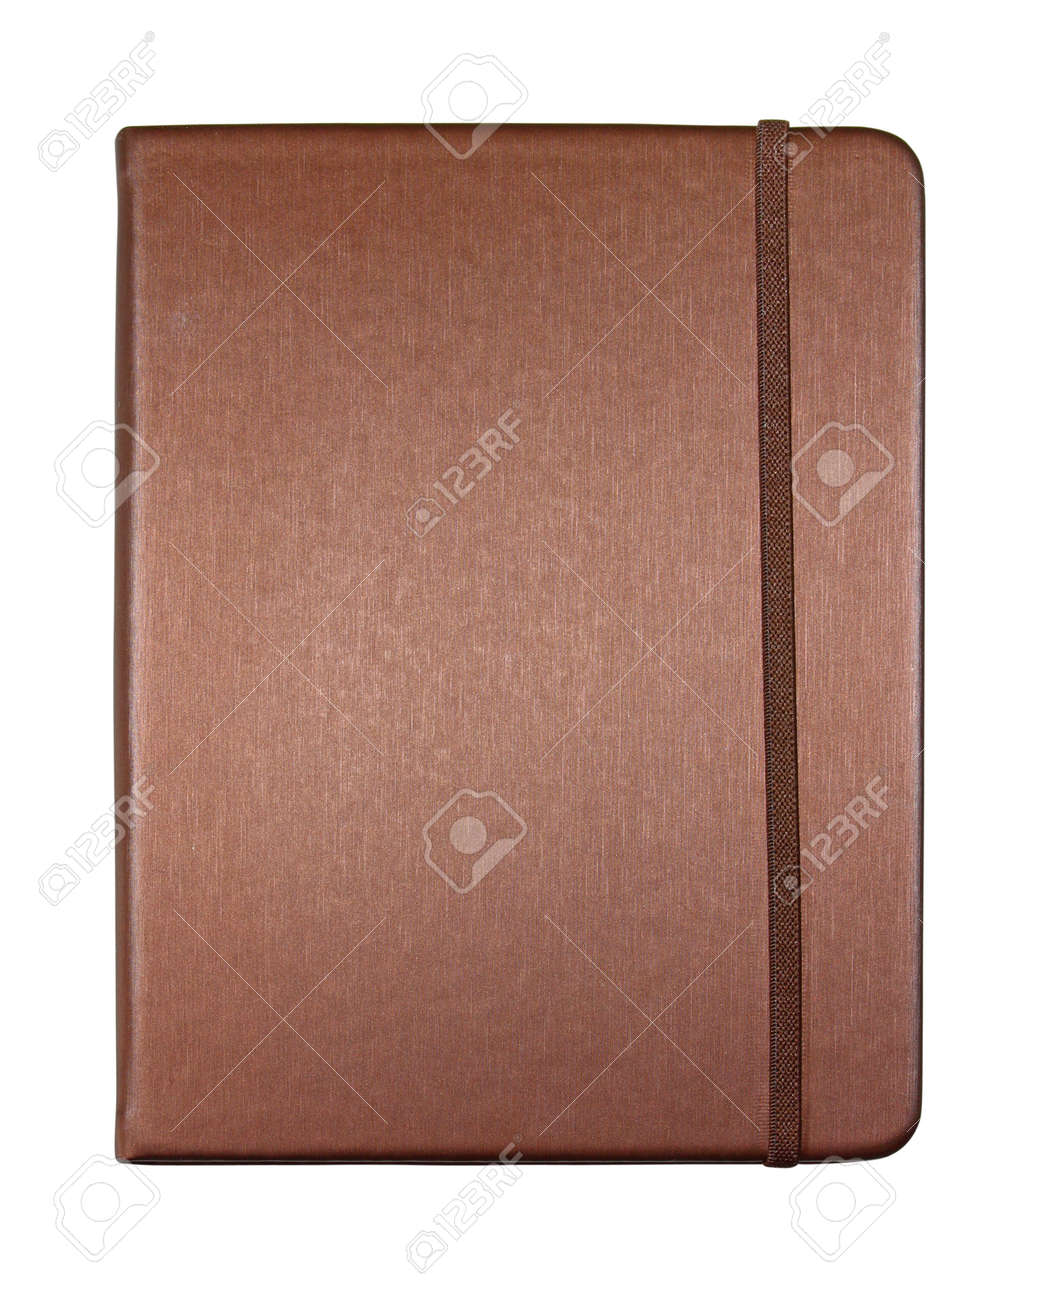 silk brown color cover note book isolated on white background Stock Photo - 11969813